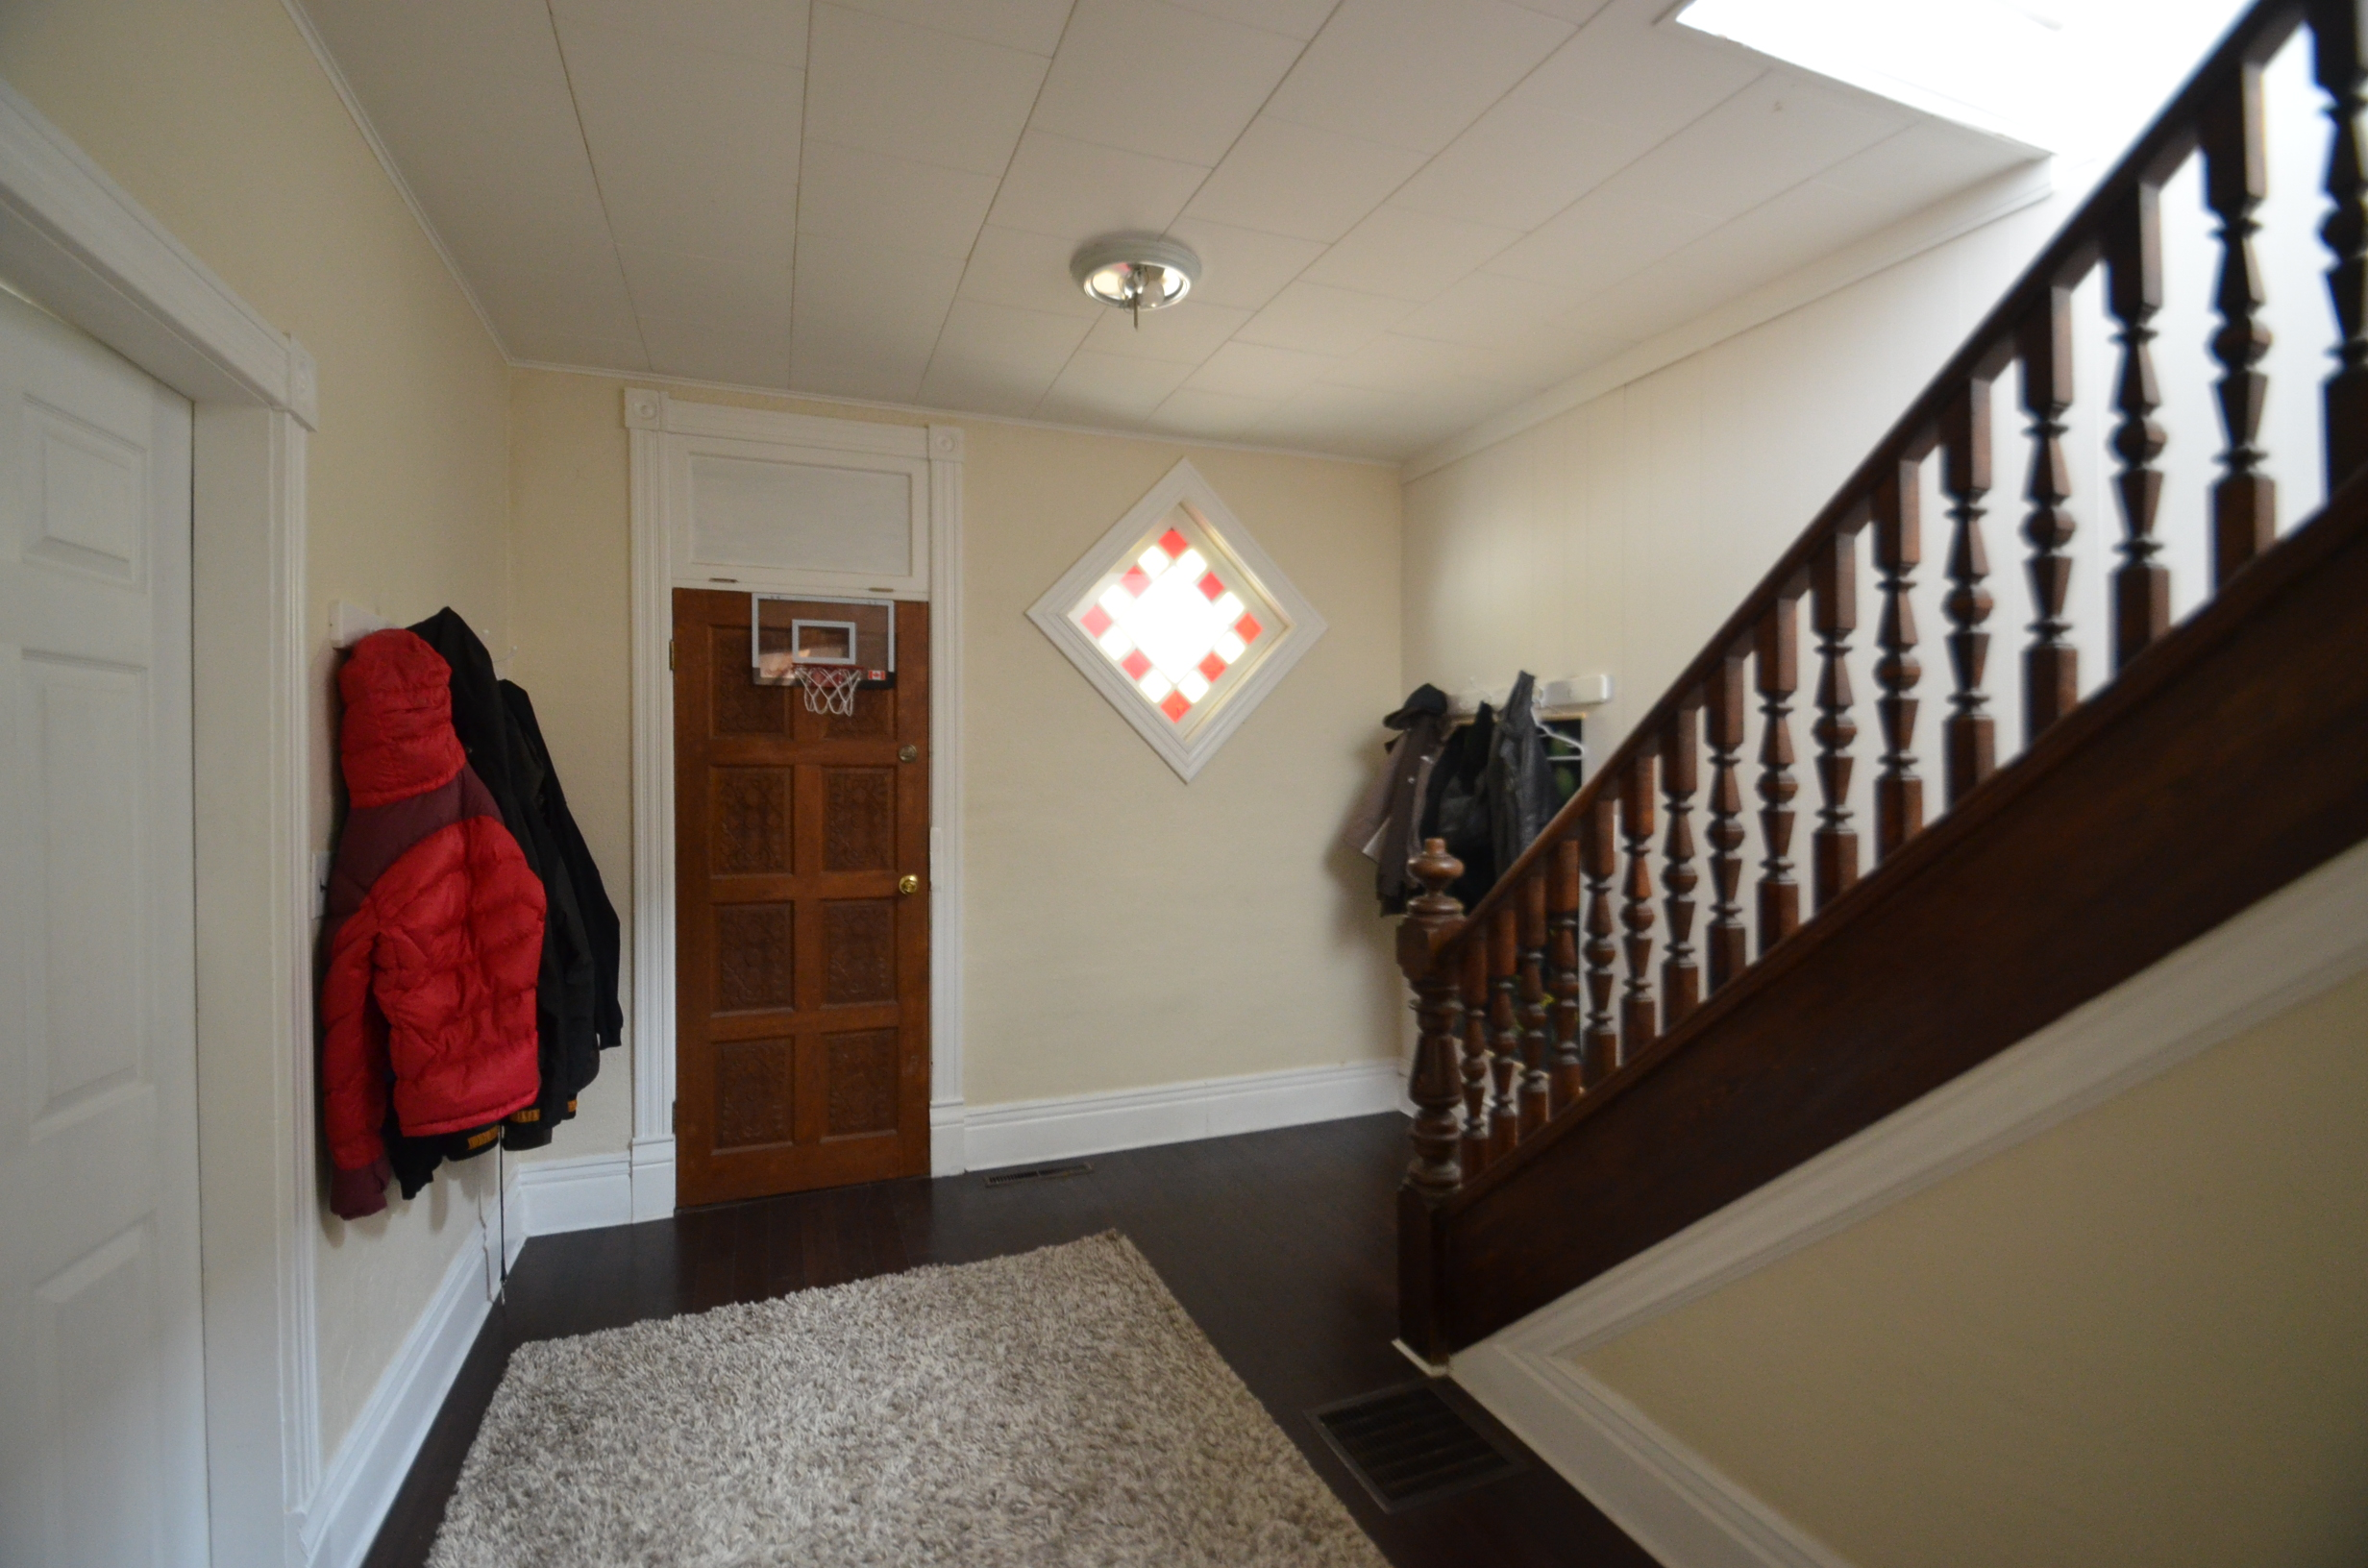 A front entry with a coat rack full of coats, a basketball hoop over the door and a rug on the floor.